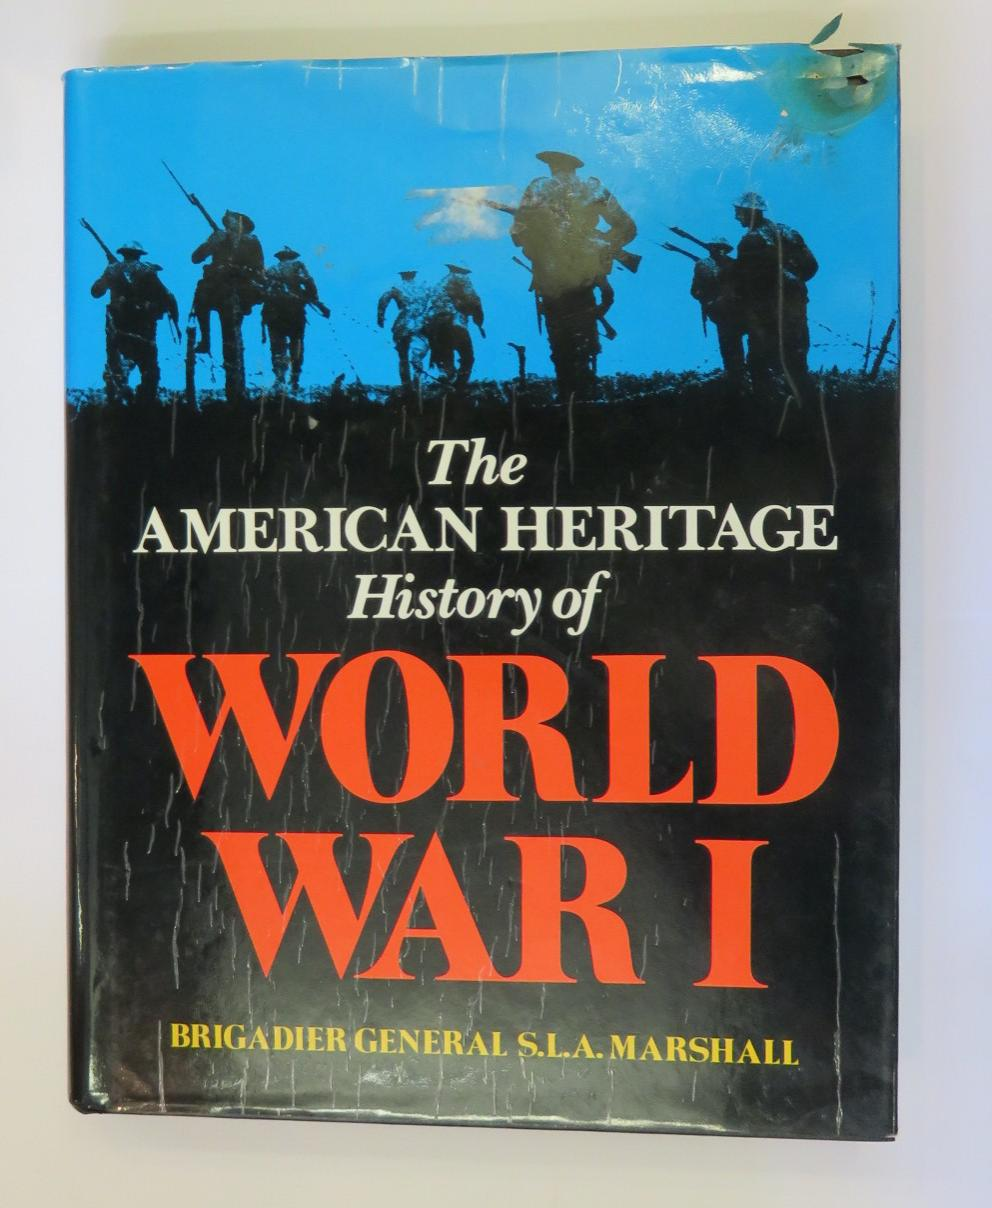 The American Heritage History of World War 1